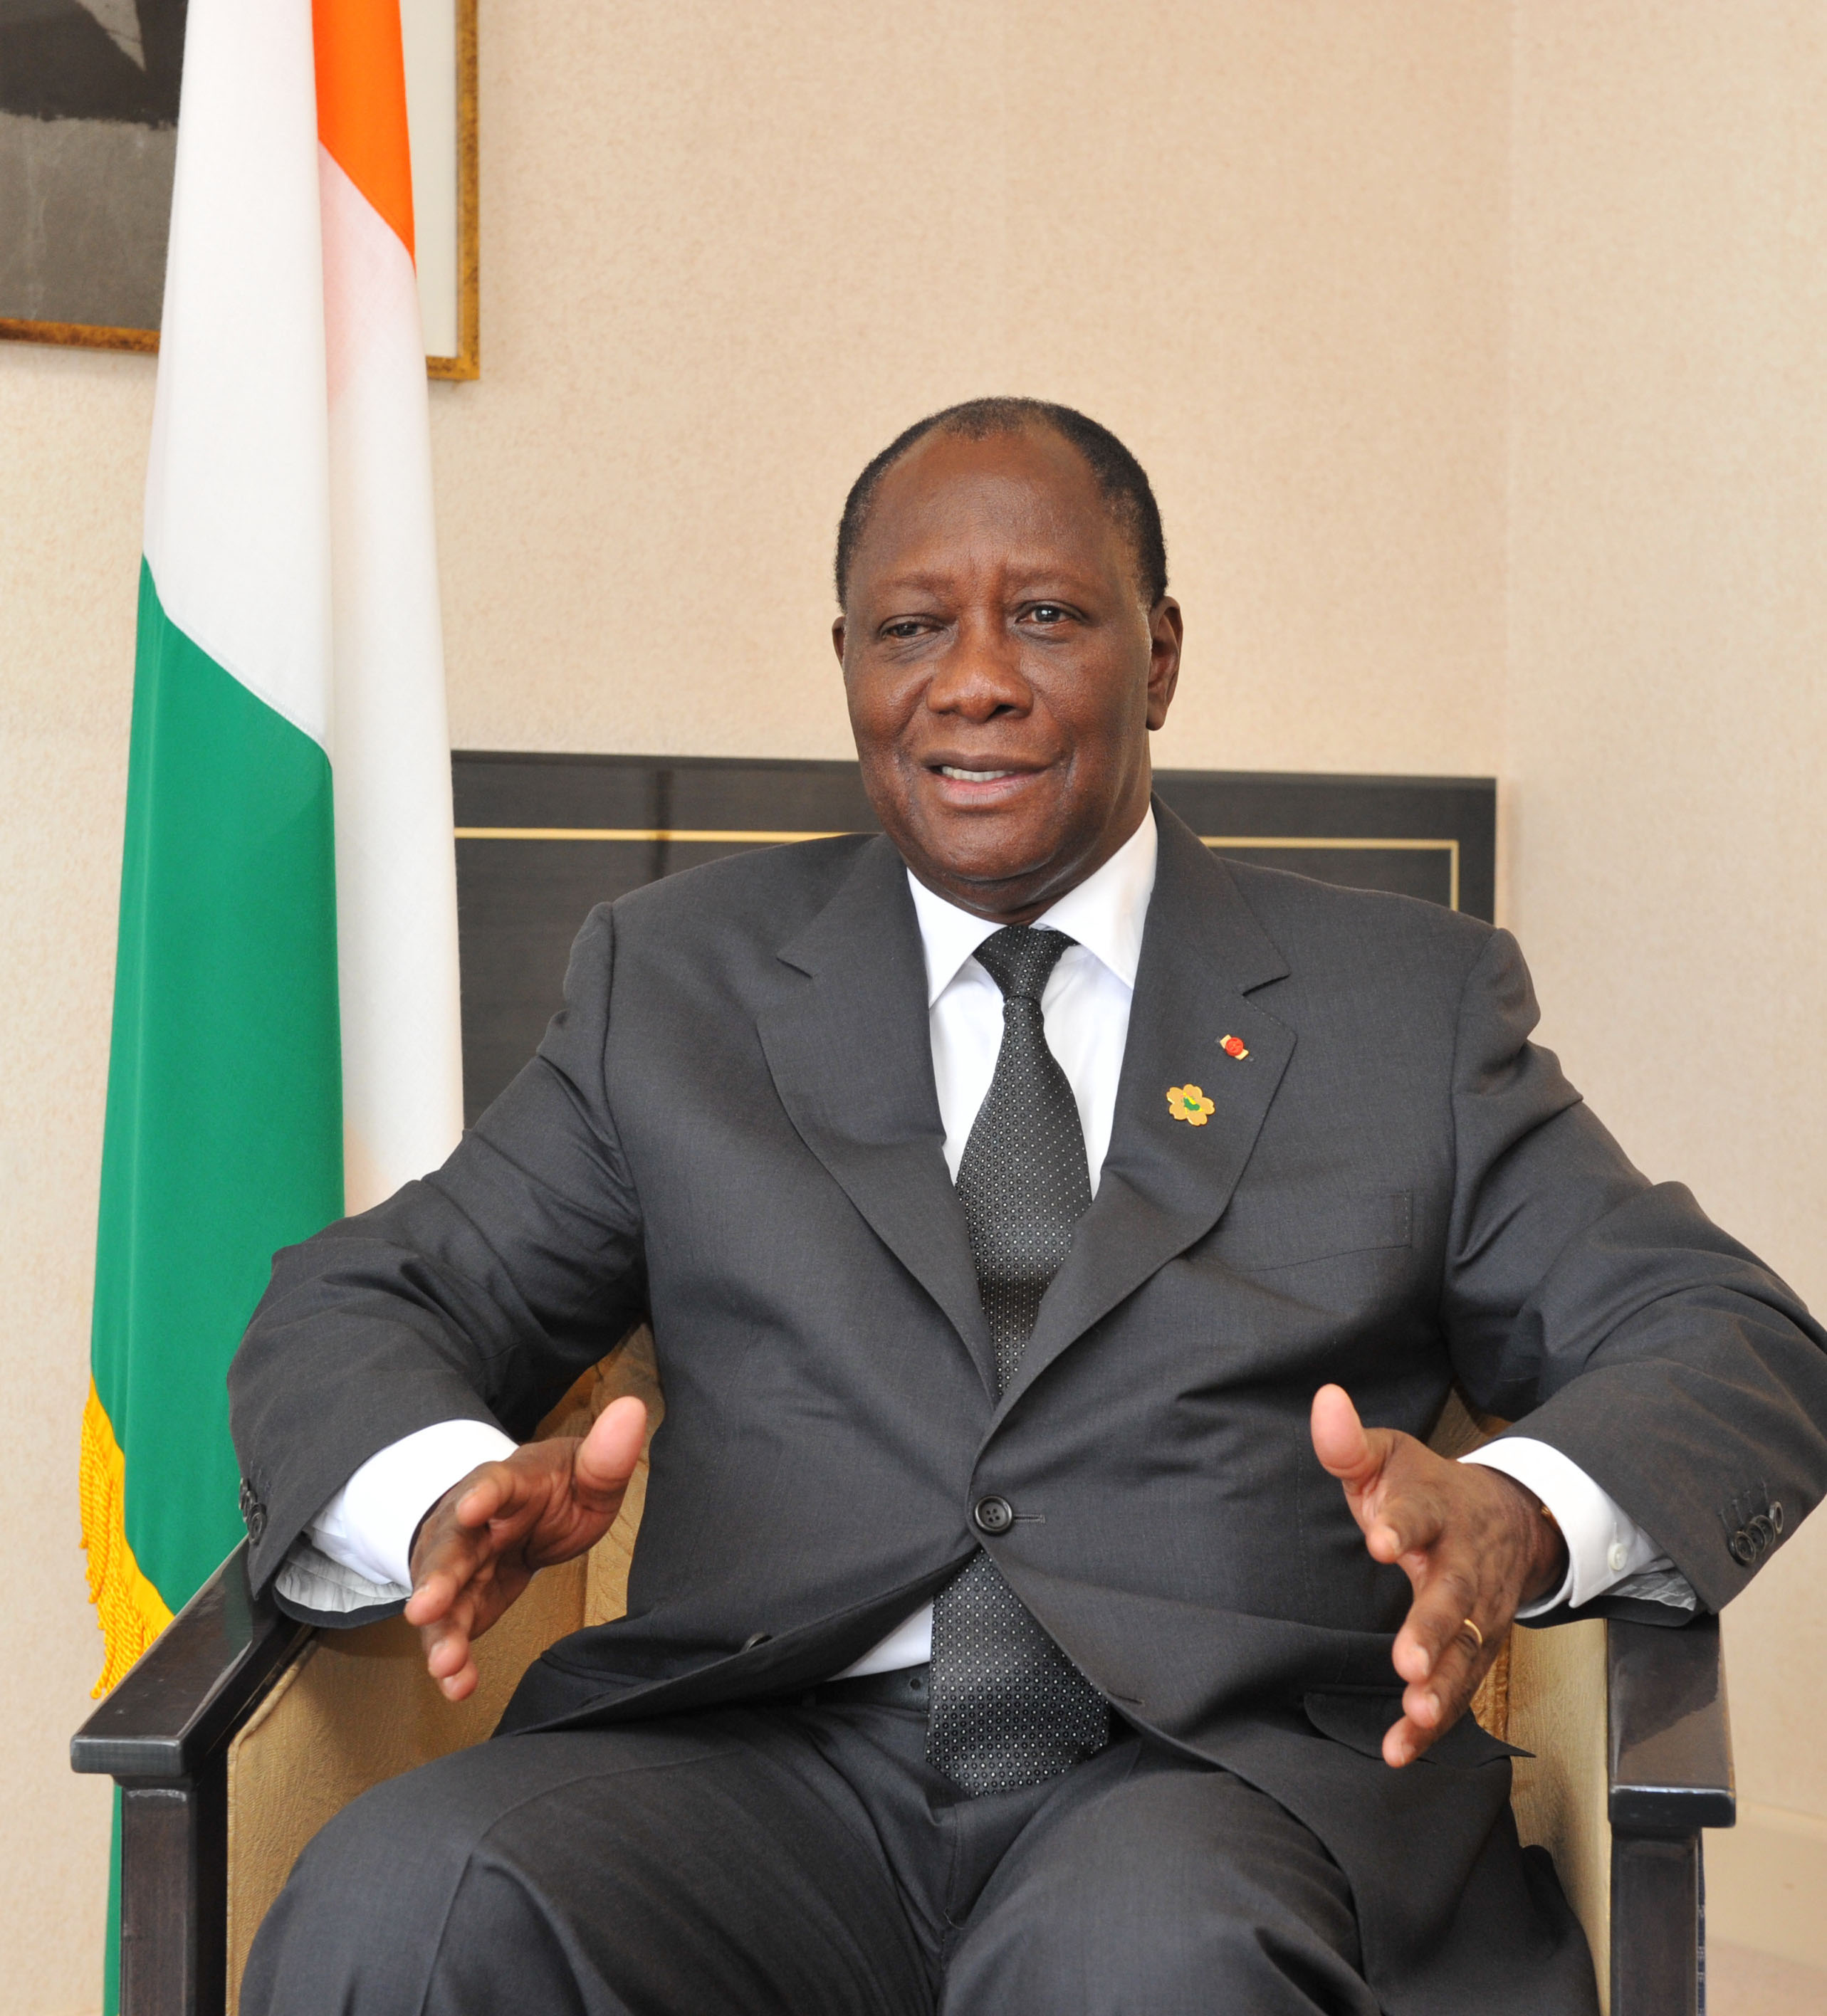 Mlassane Ouattara, President of Cote d'lvoire